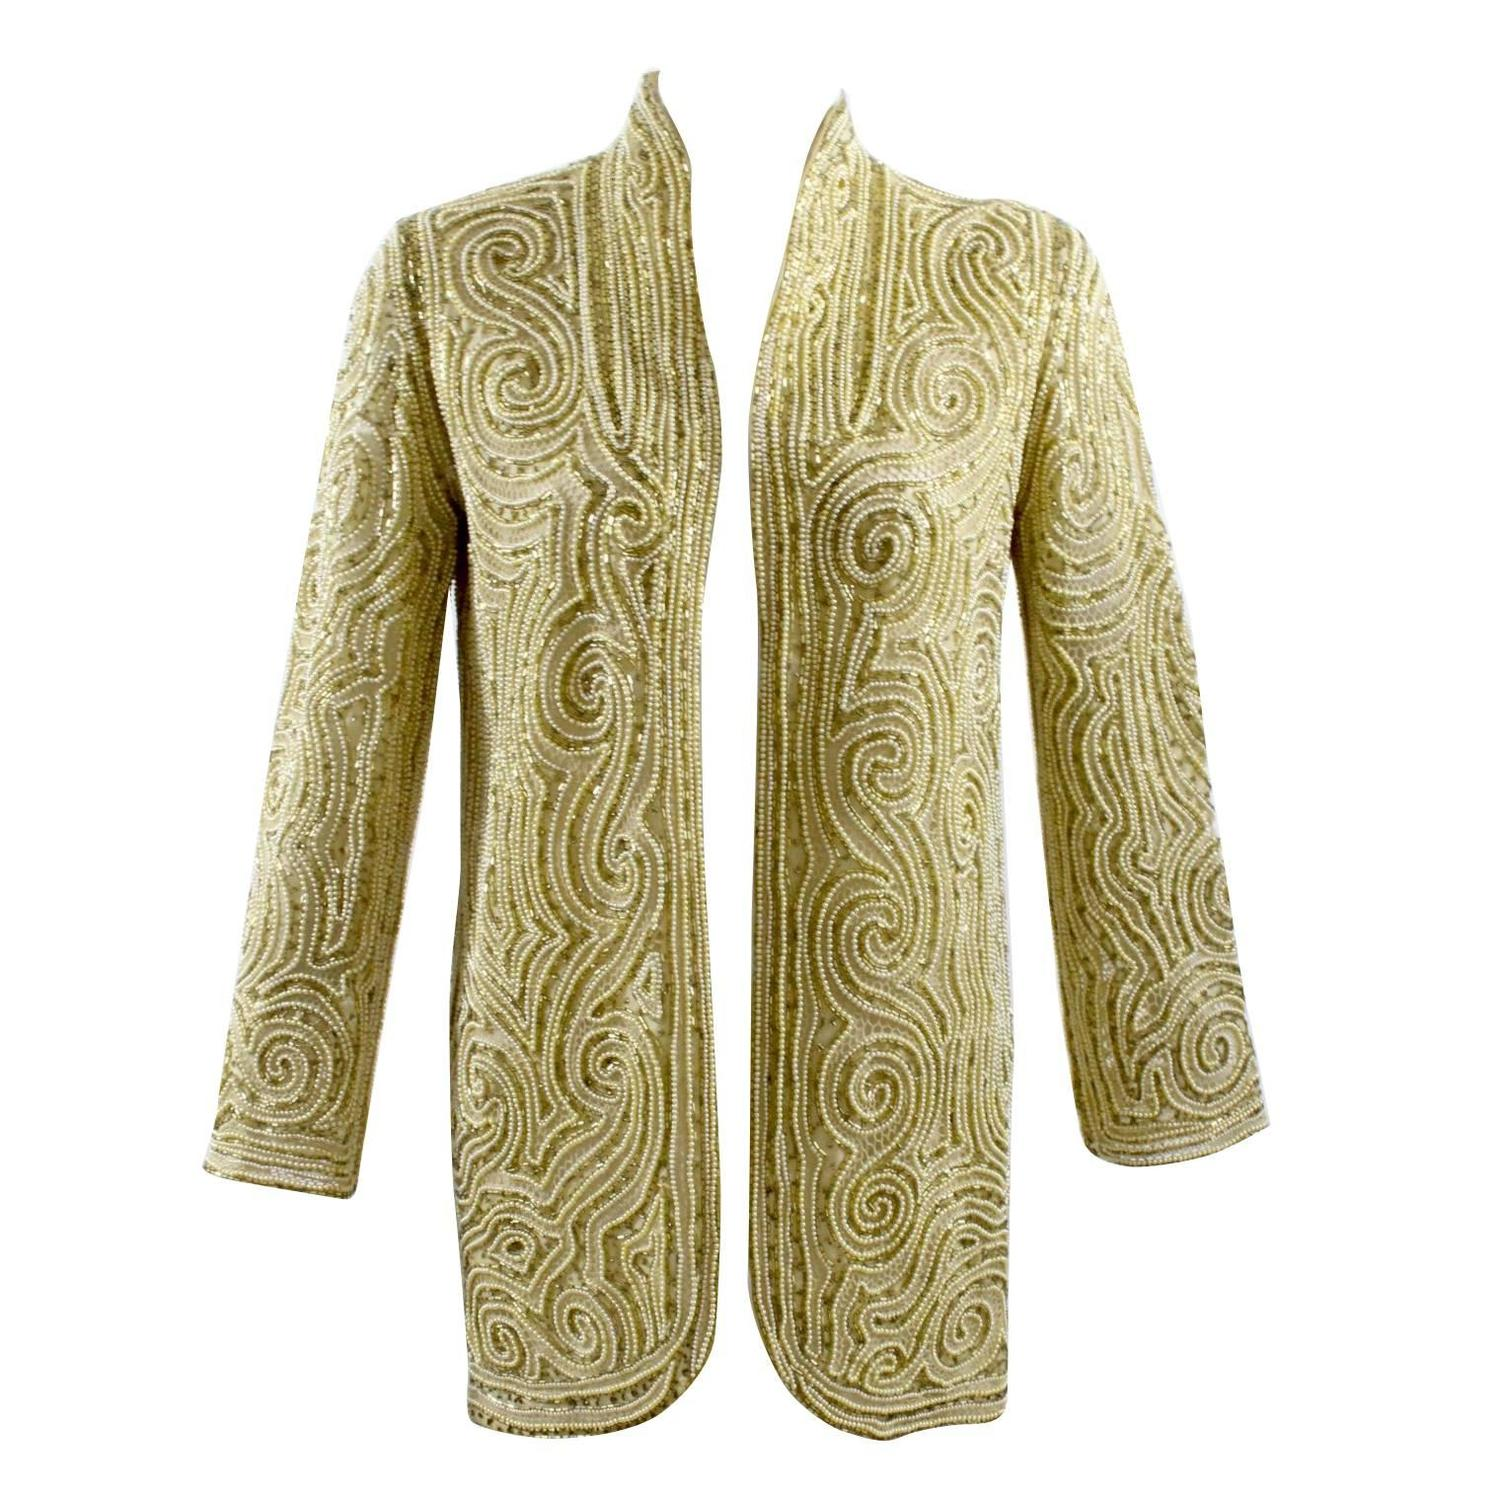 S halston hand embroidered beads and golden pearl silk